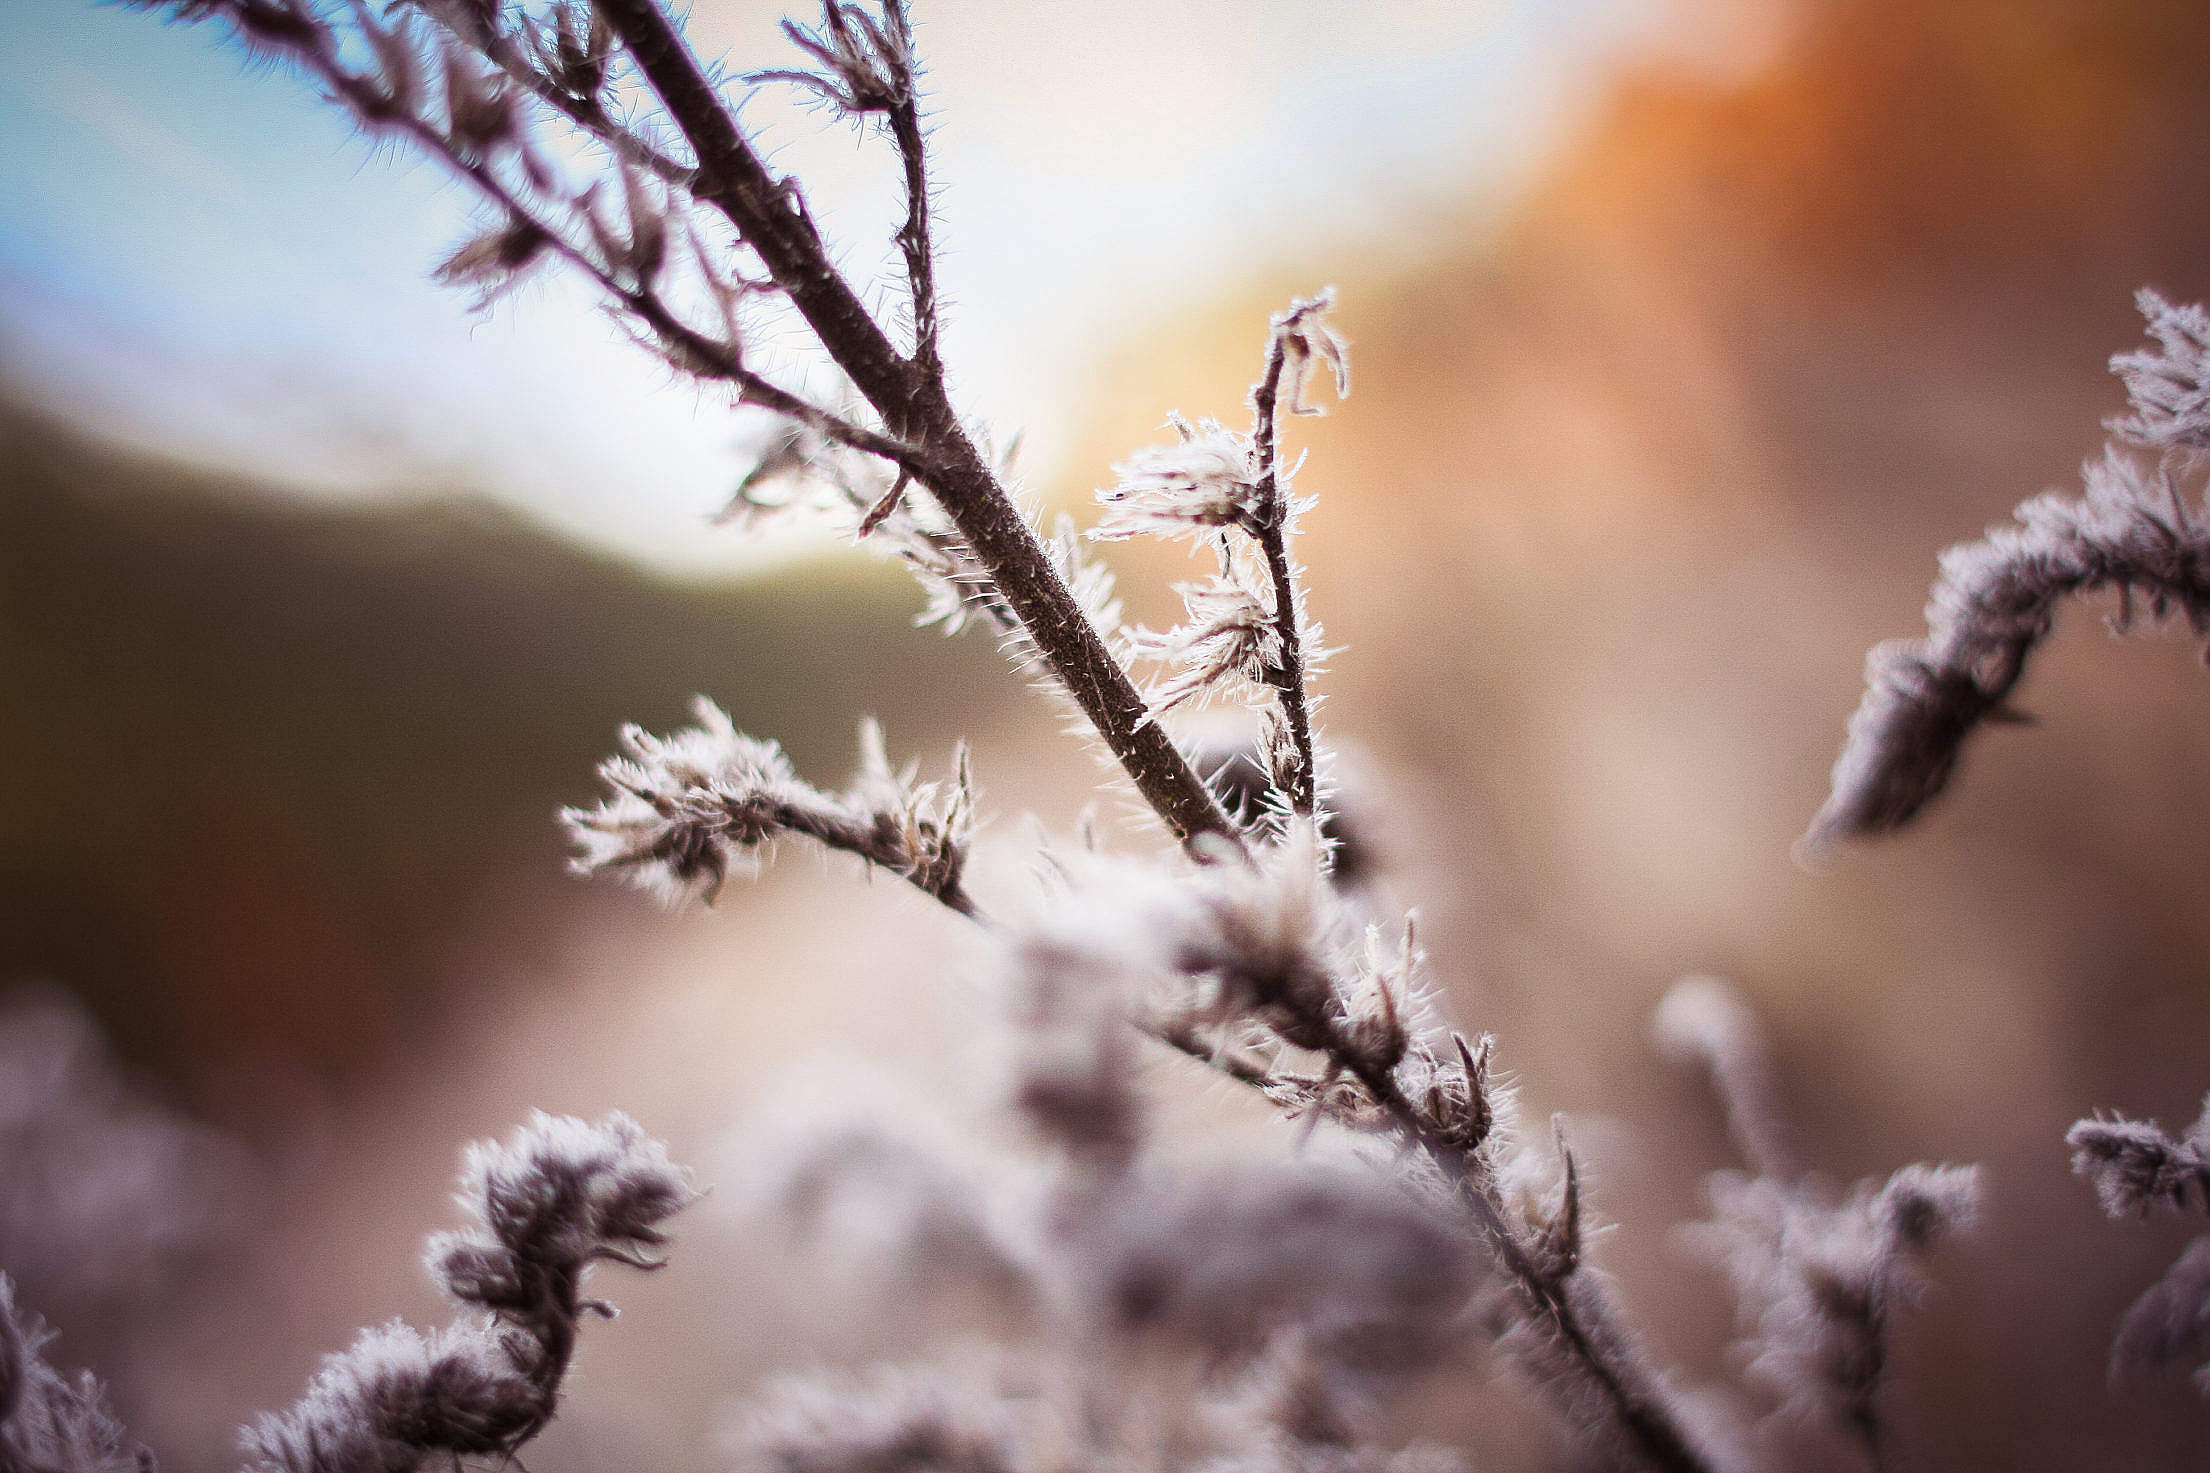 Morning Hoarfrost on a Bush Free Stock Photo